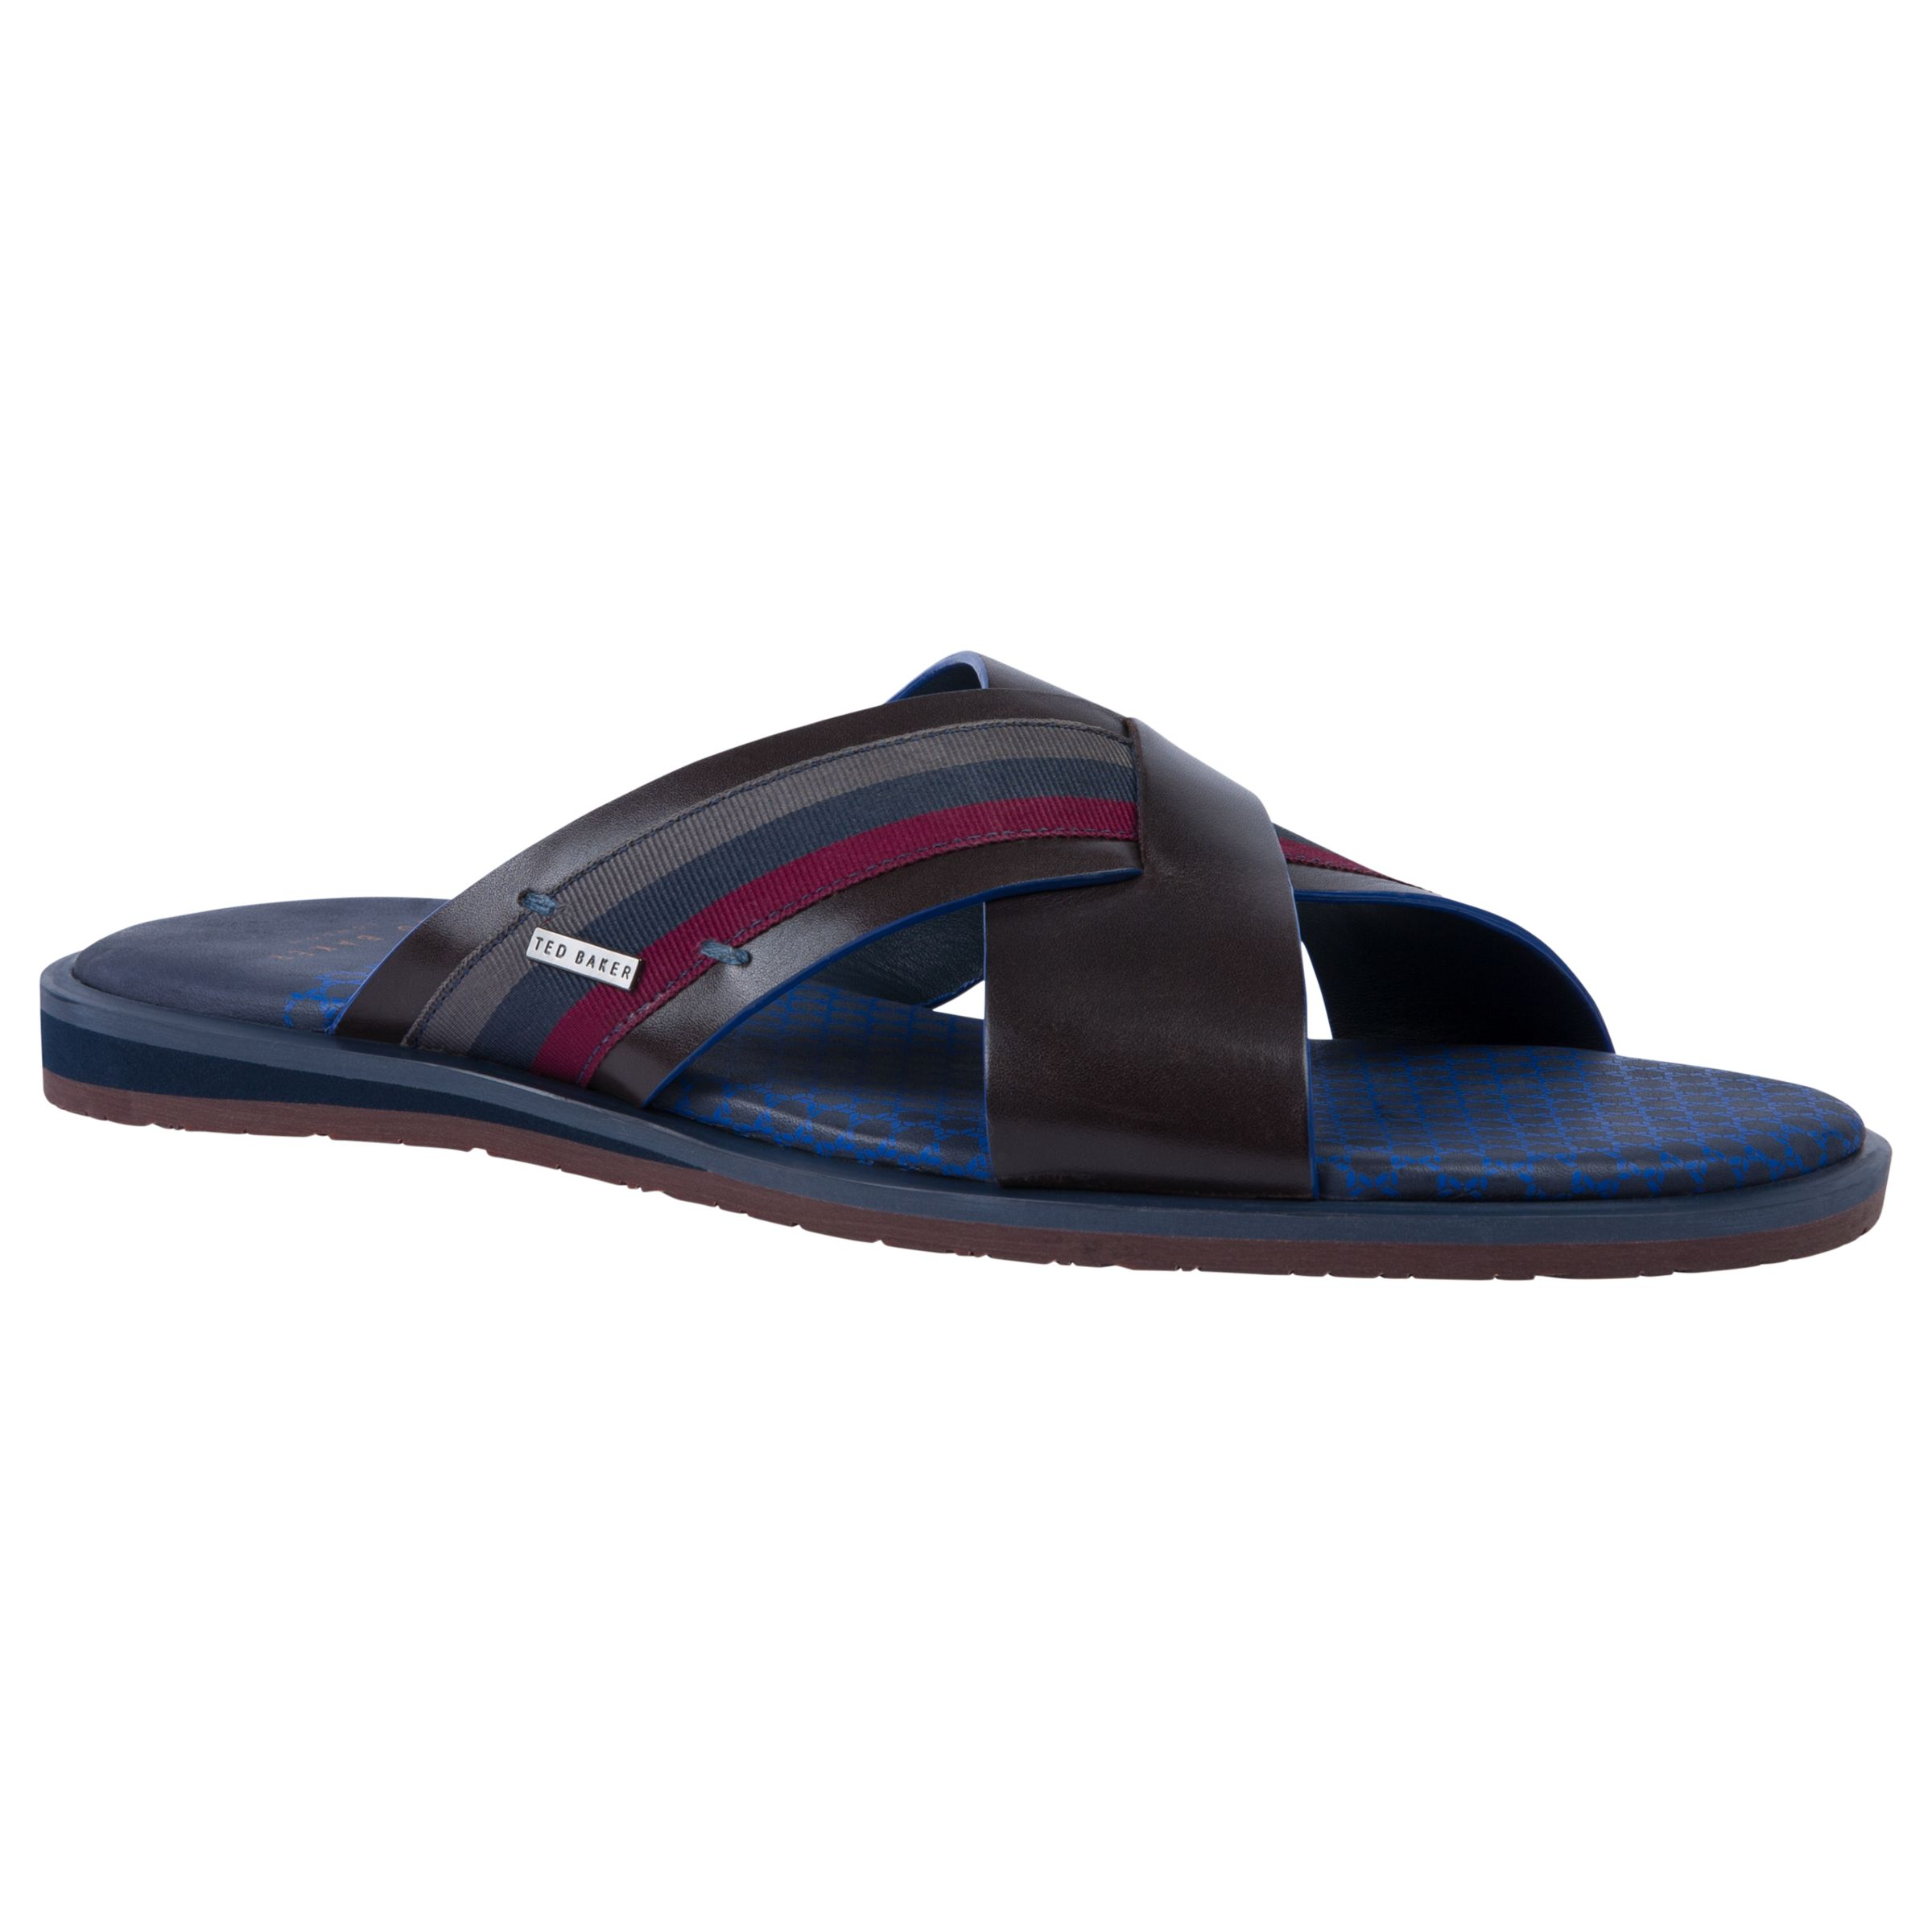 6c2d196fc1123e Ted Baker Farrull Cross Over Sandals at John Lewis   Partners